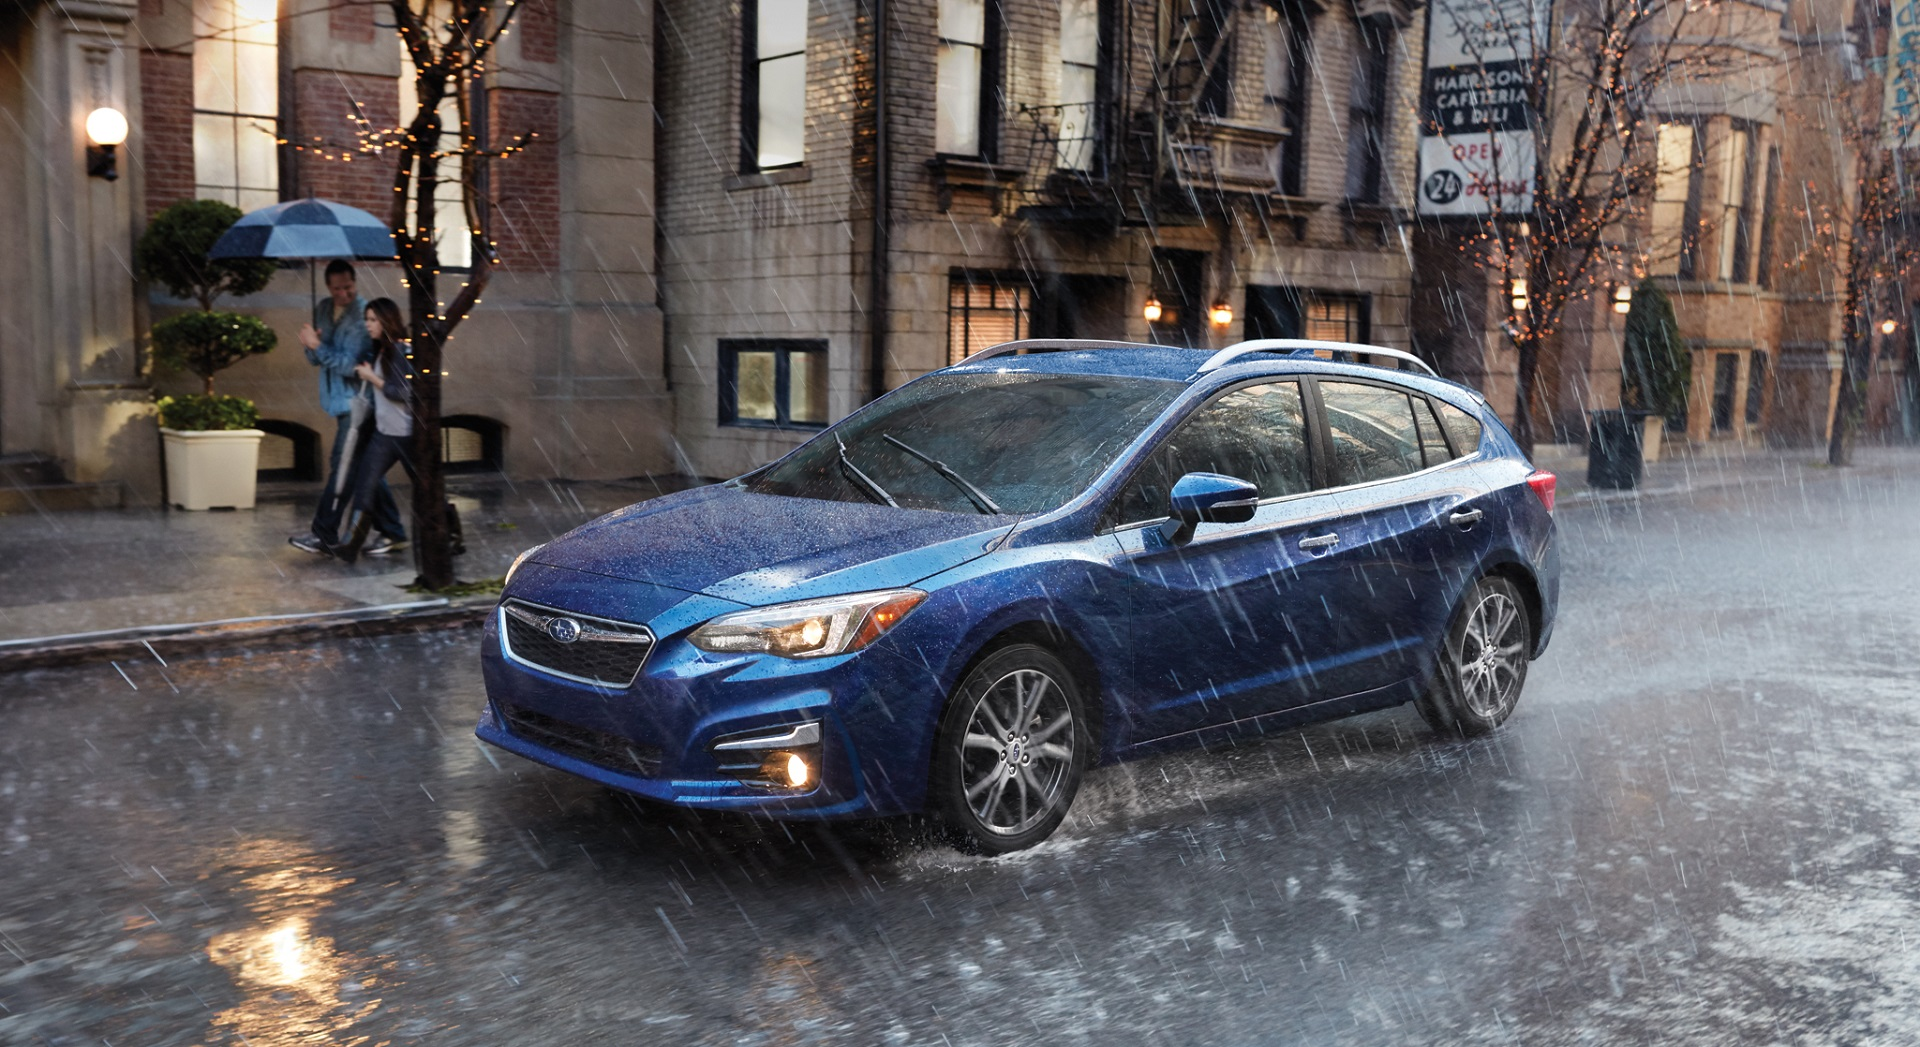 2017 subaru impreza quality review the car connection vanachro Image collections